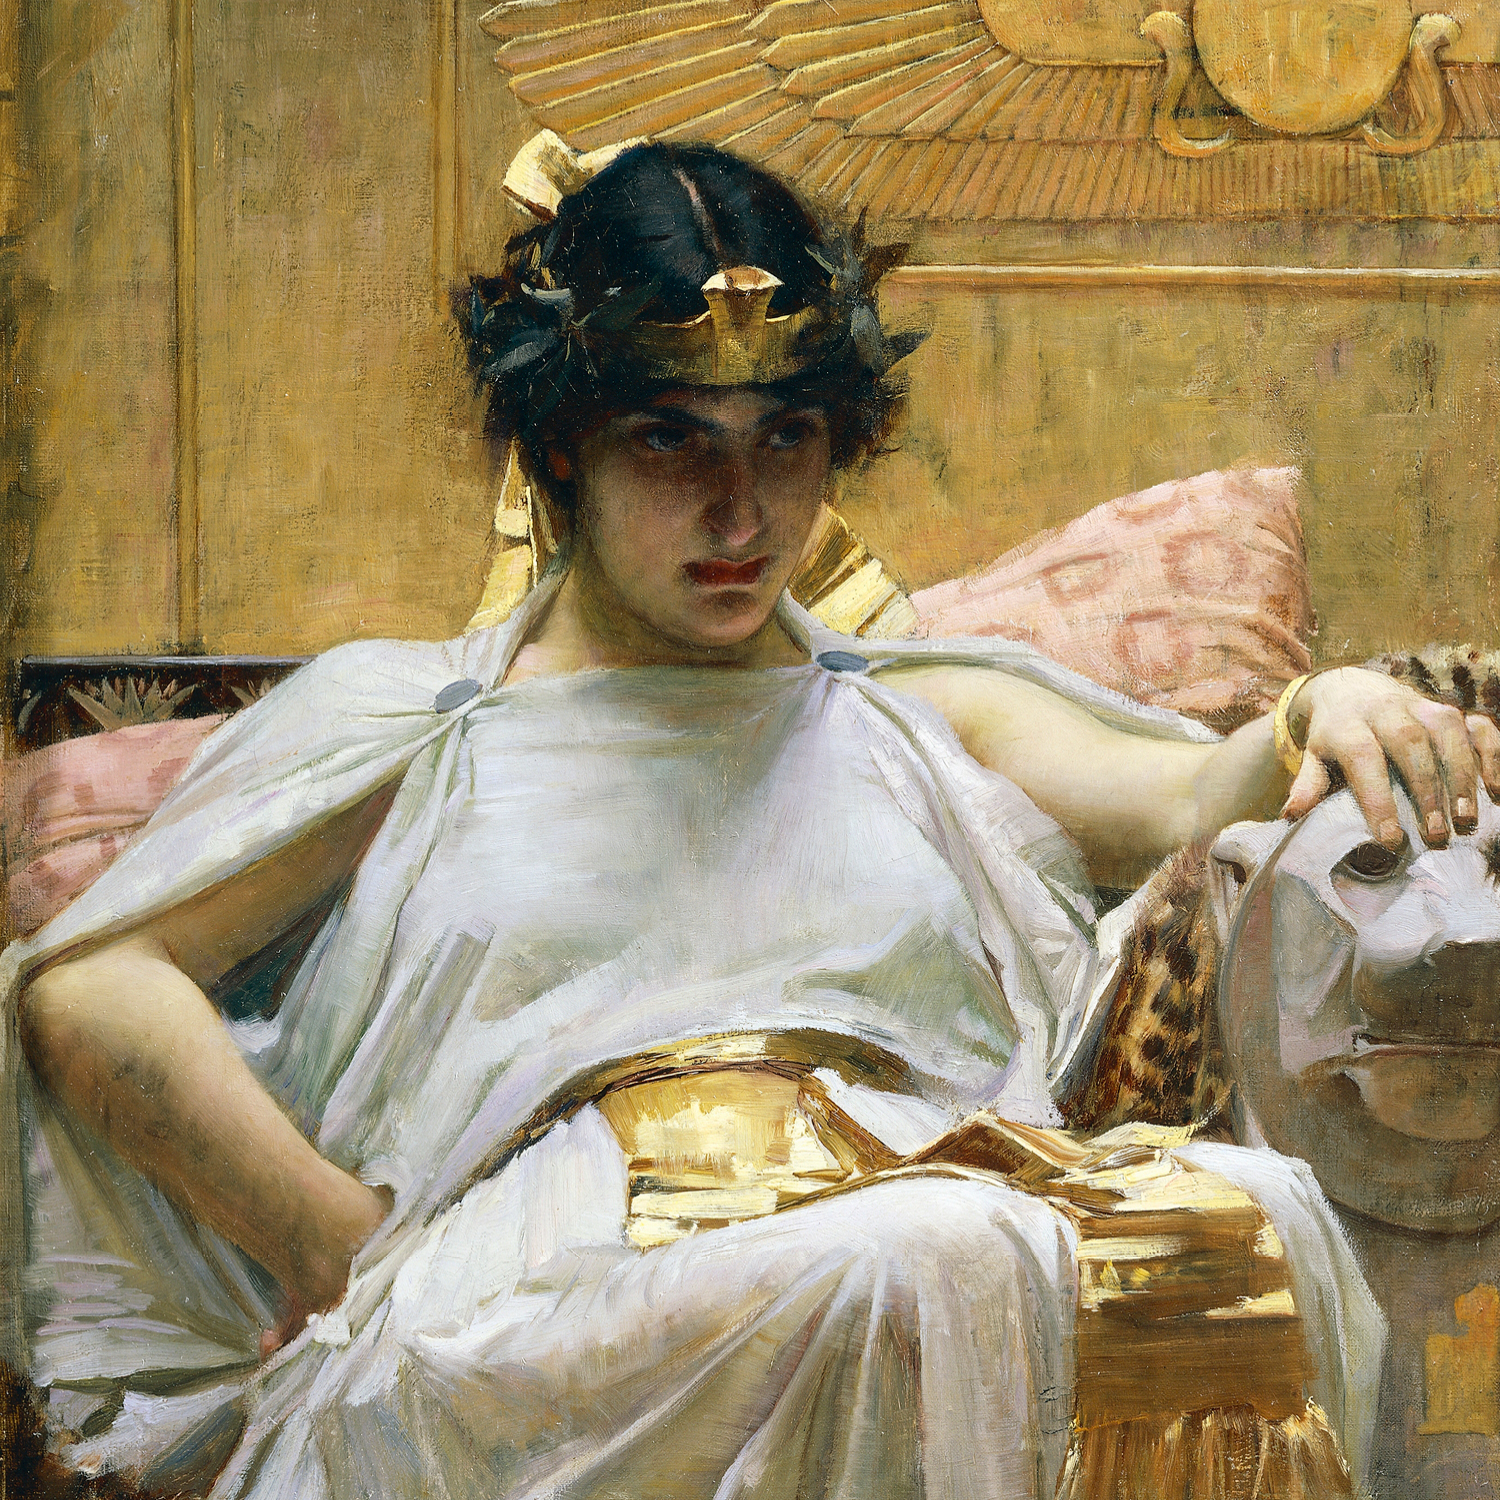 Cleopatra Power Woman Painting by John William Waterhouse